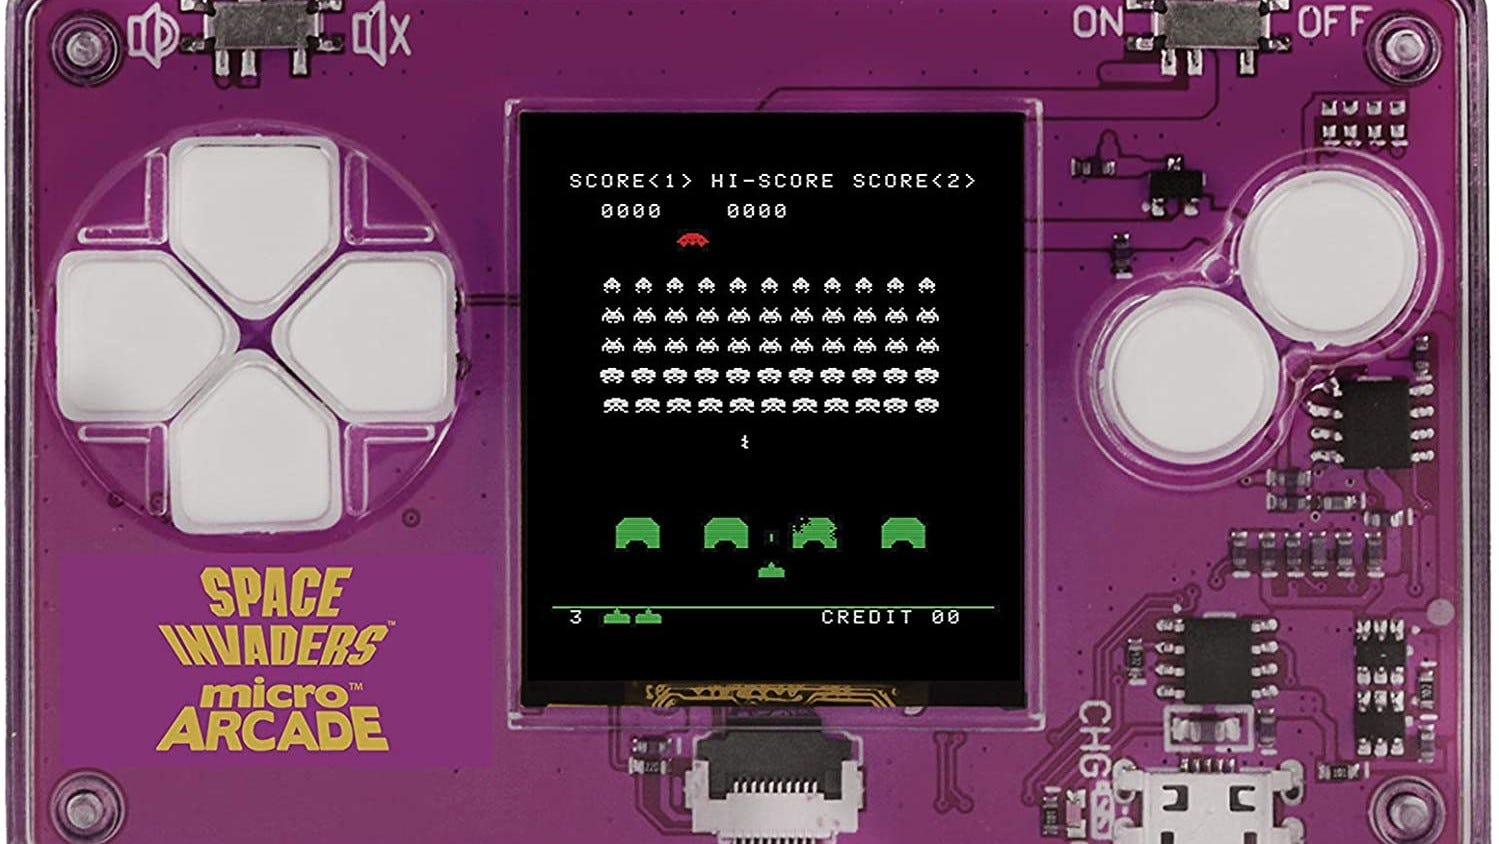 """""""Space Invaders"""" Micro Arcade game."""